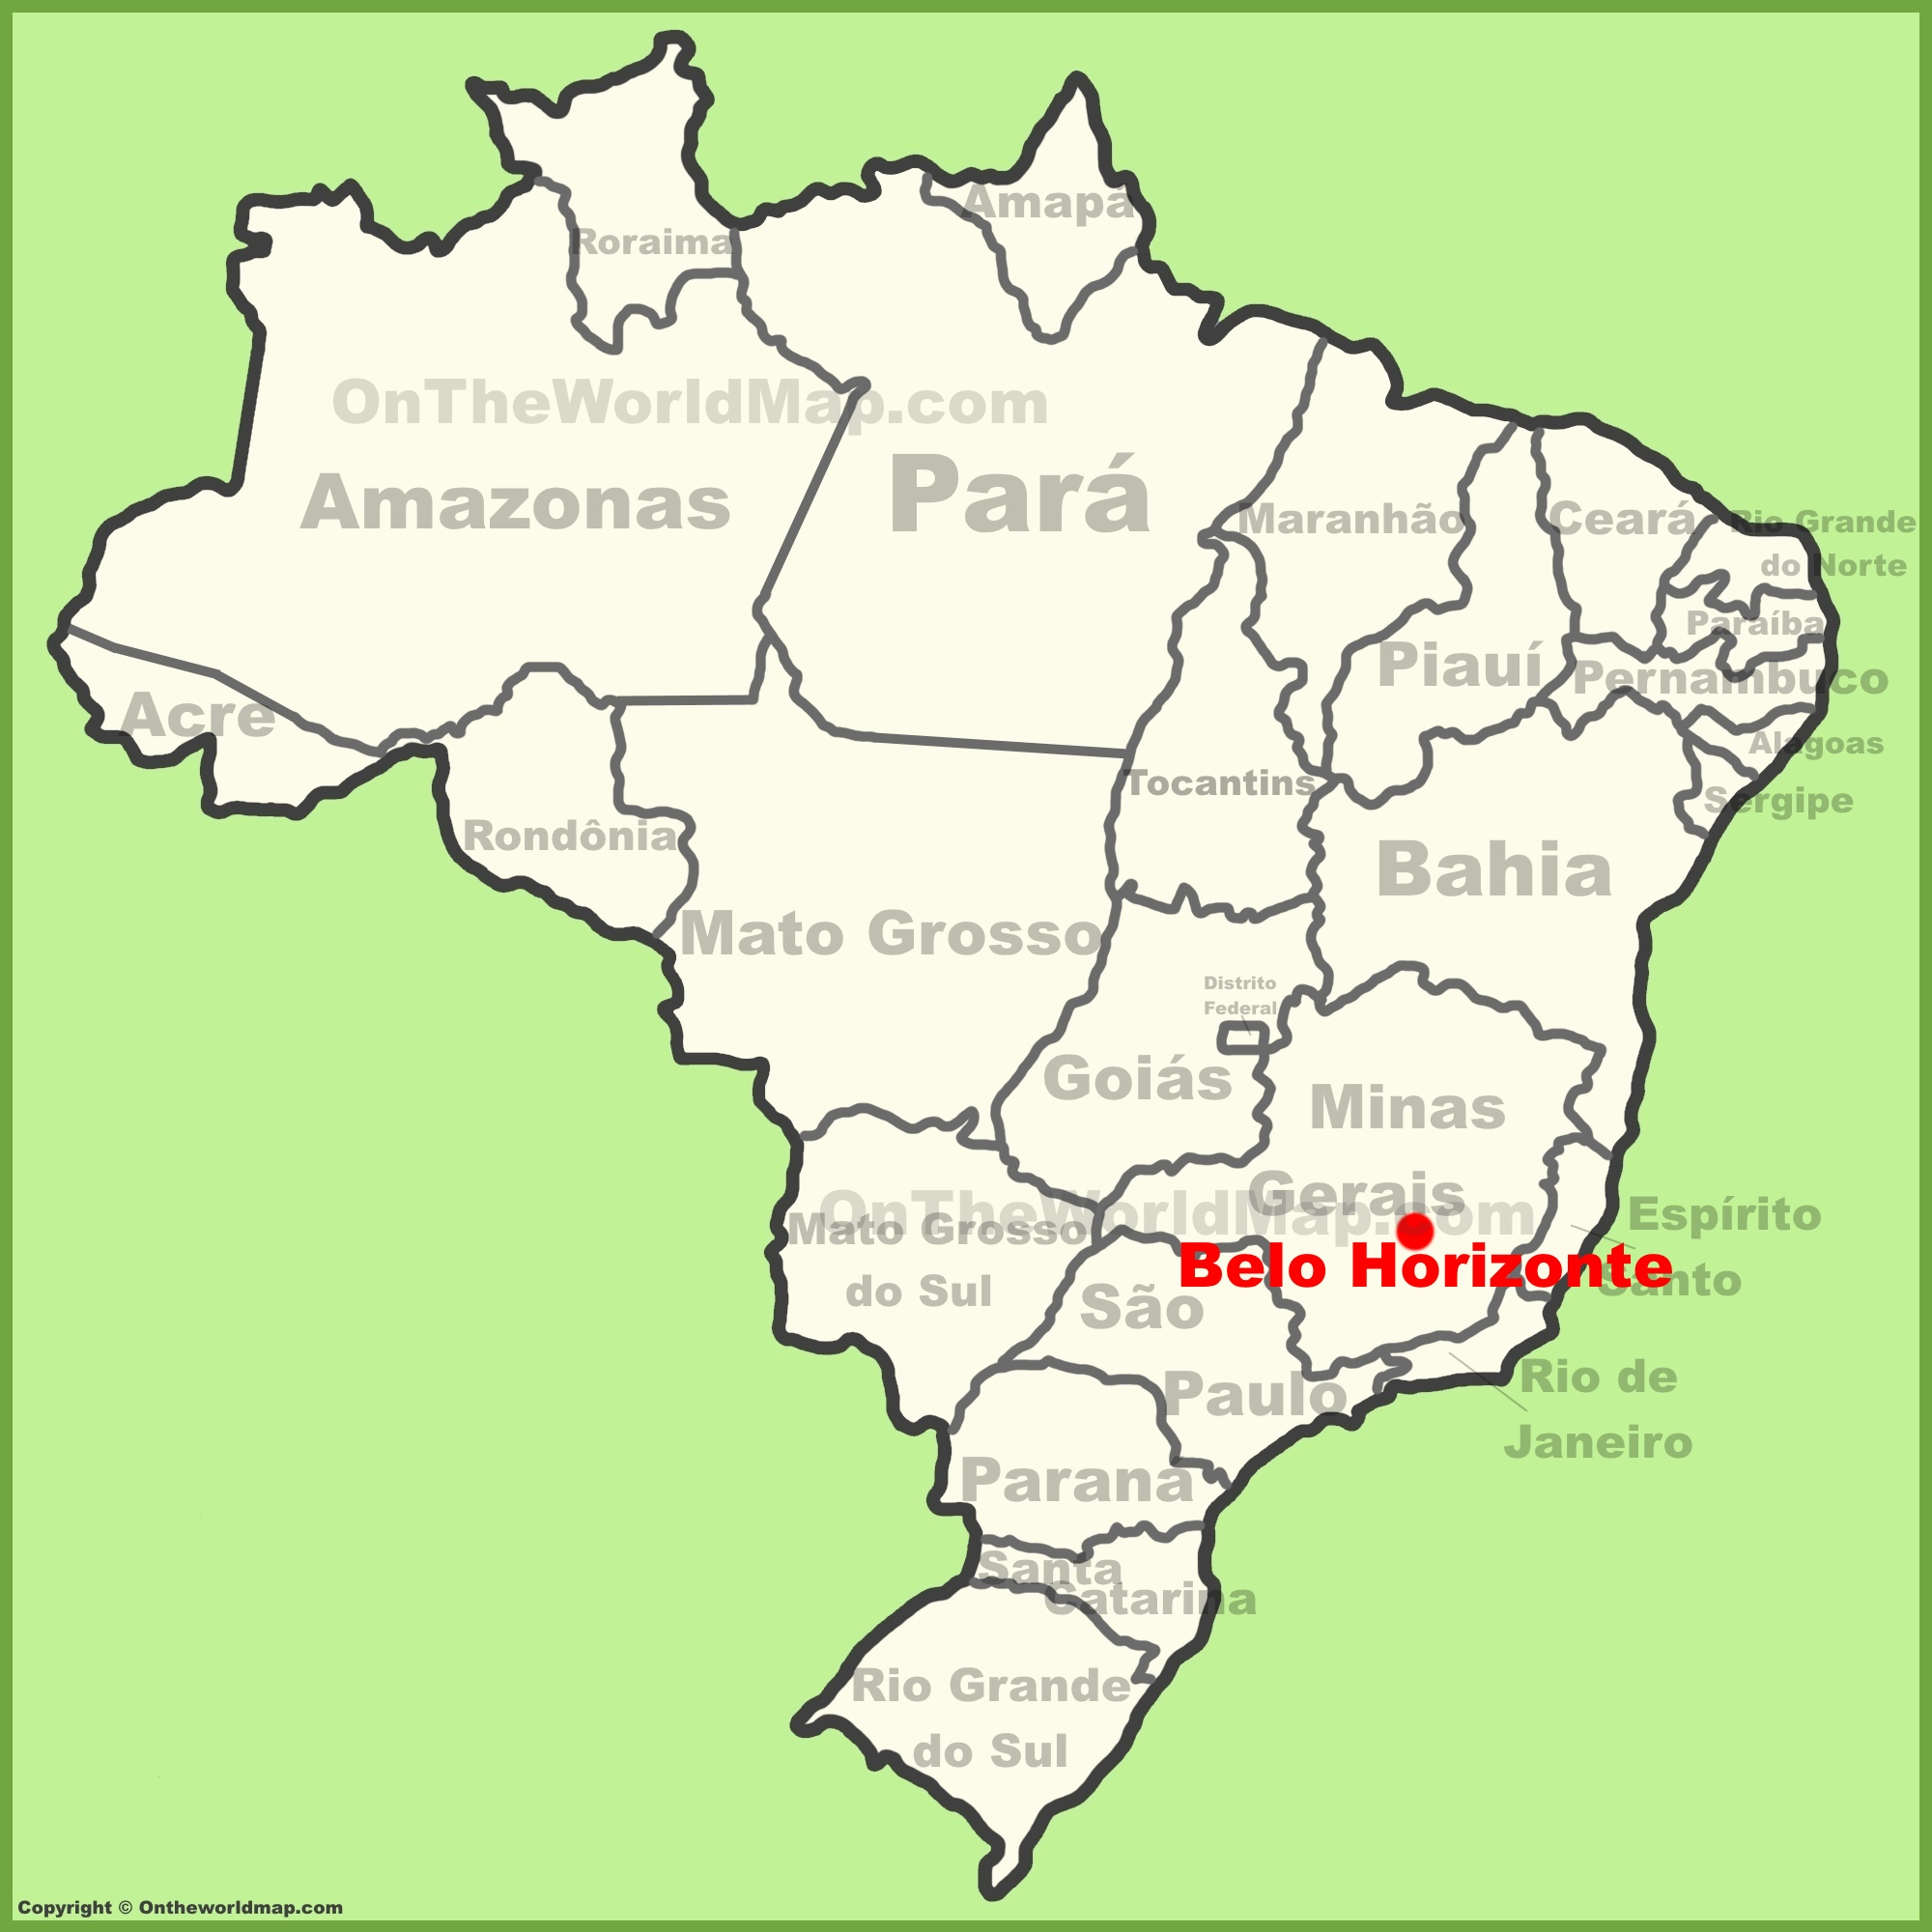 Belo Horizonte location on the Brazil map